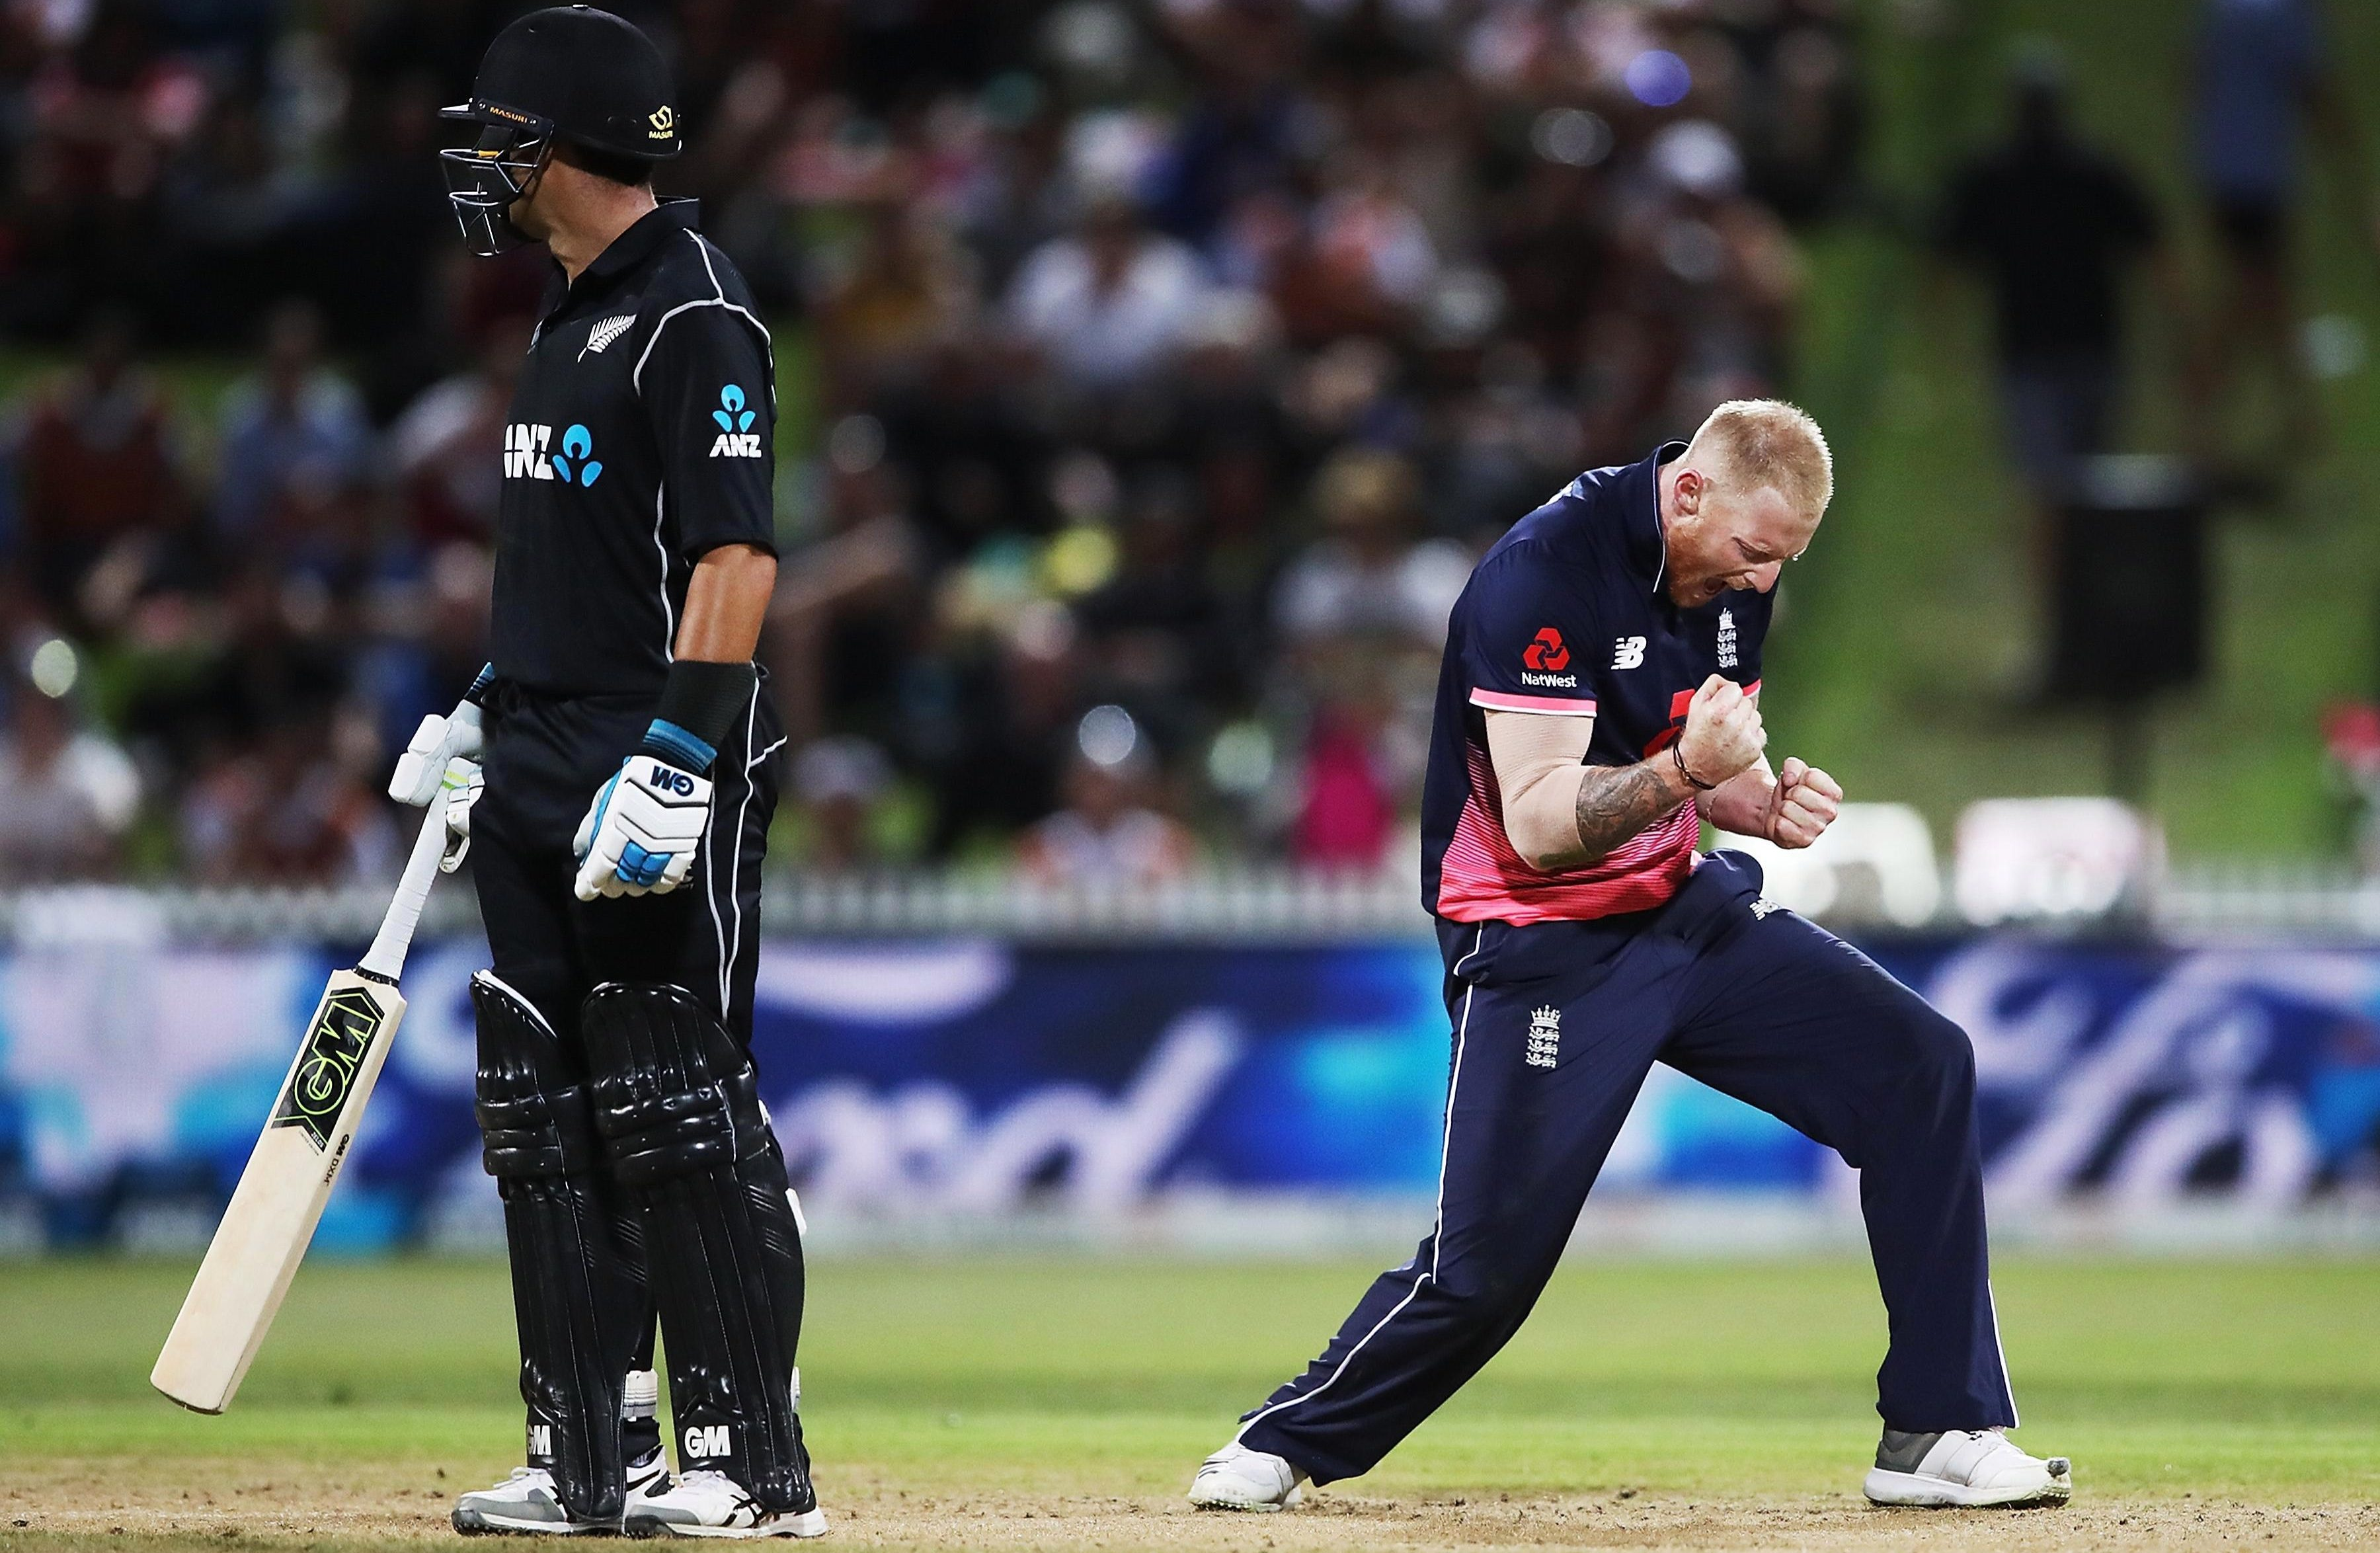 Ben Stokes took the wickets of Tom Latham and Colin de Grandhomme in his second spell to give England hope